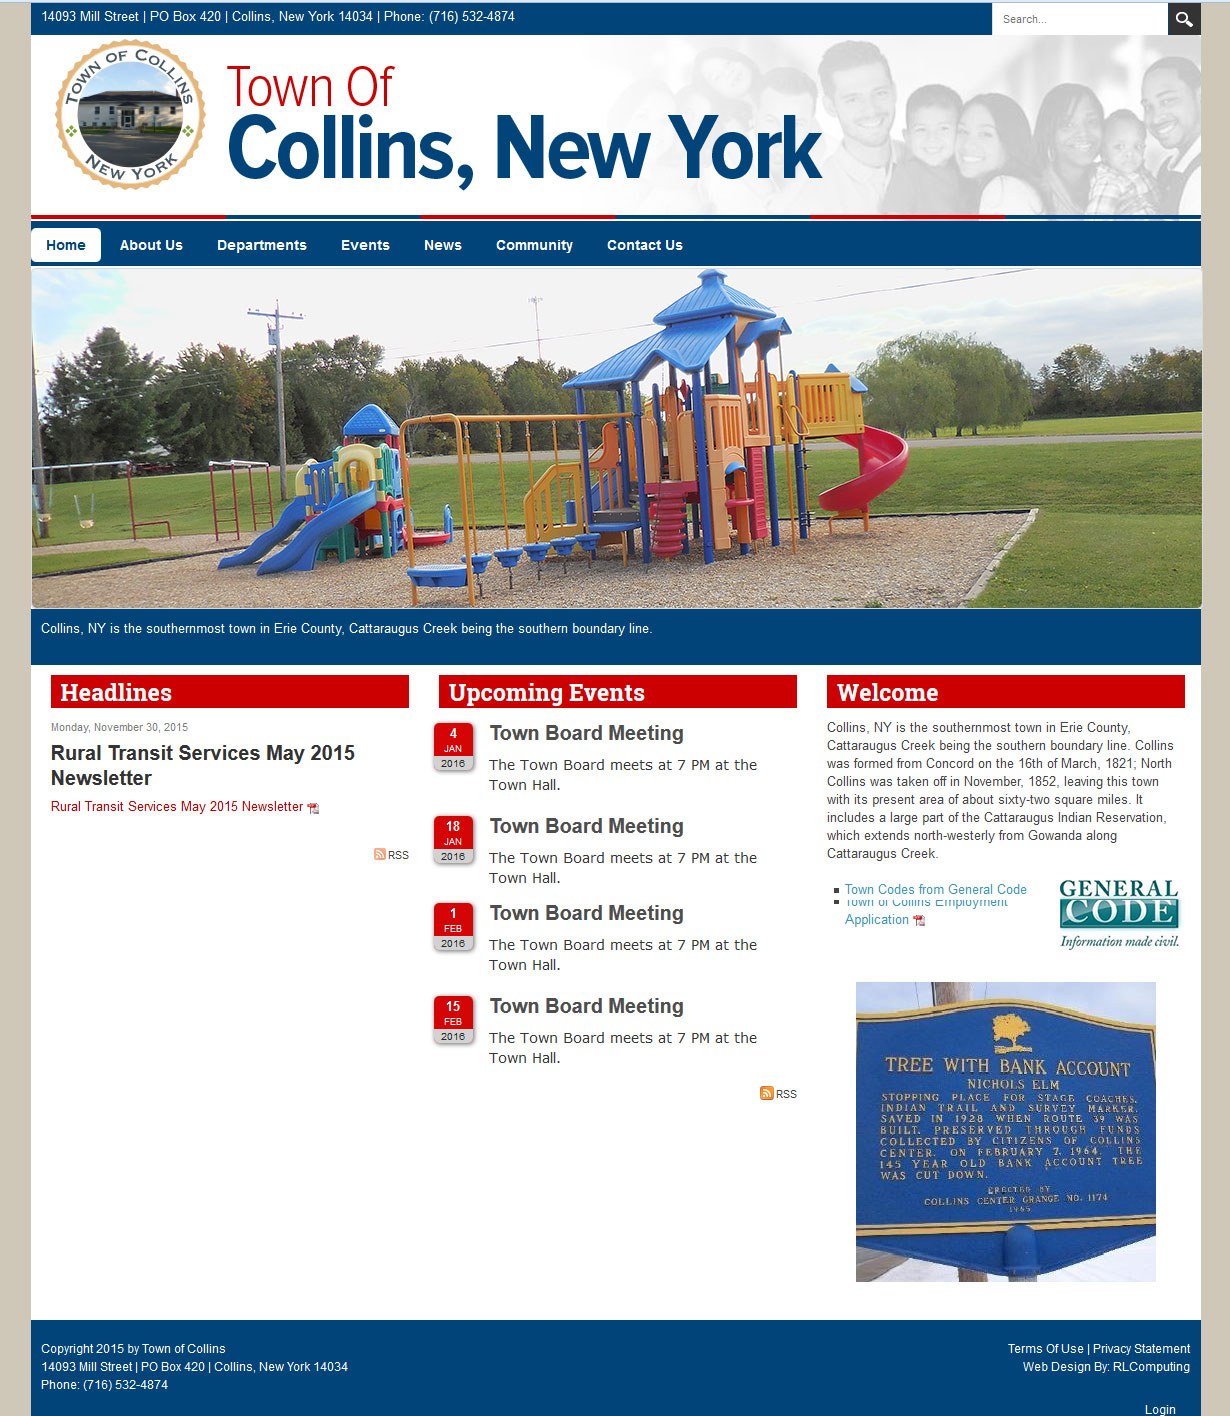 Town of Collins